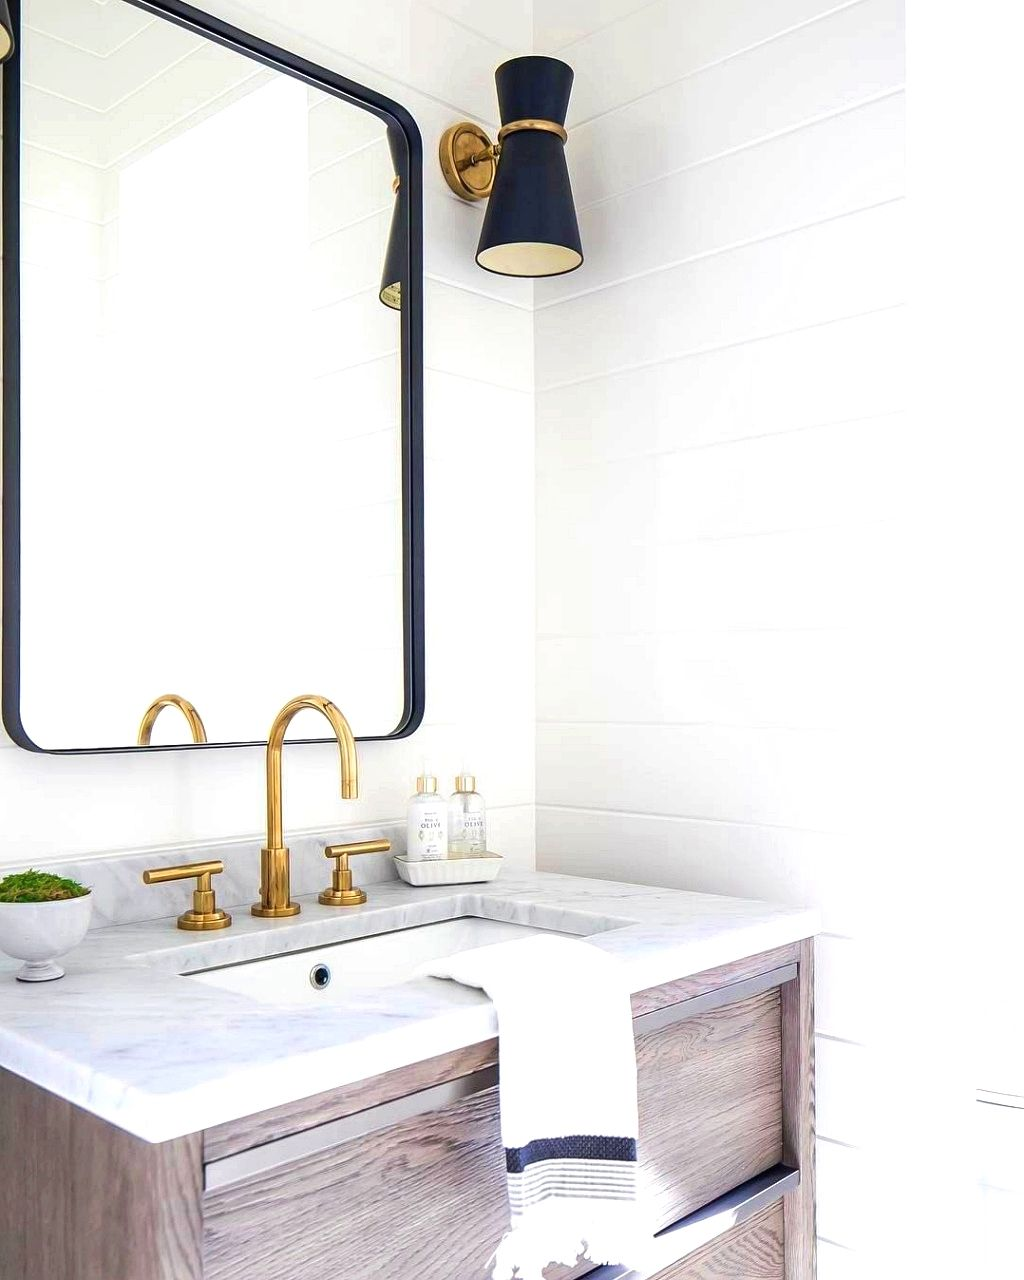 Bathroom design guide mix things which do not so matchy matchy you could possibly like the zebra stripe throw pillow offers a whimsical look of